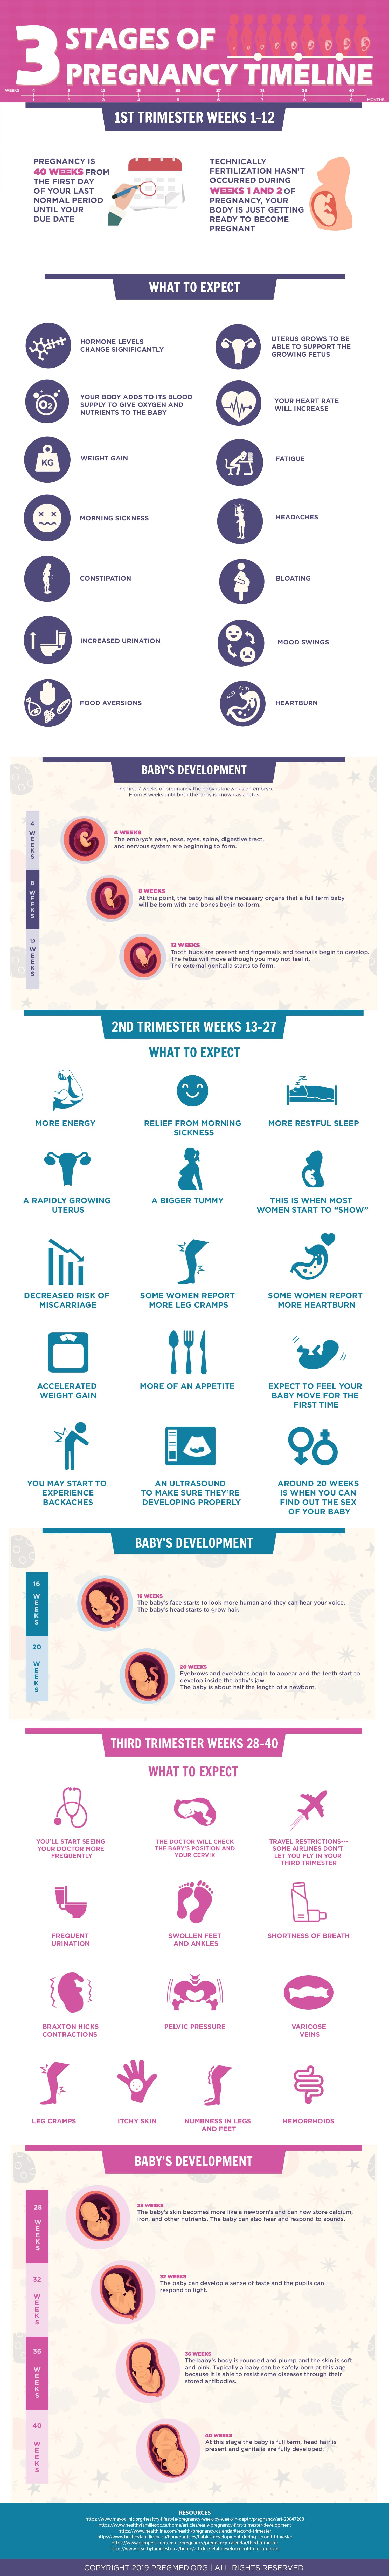 Comprehensive Guide on the 3 Trimesters of Pregnancy - Infographic